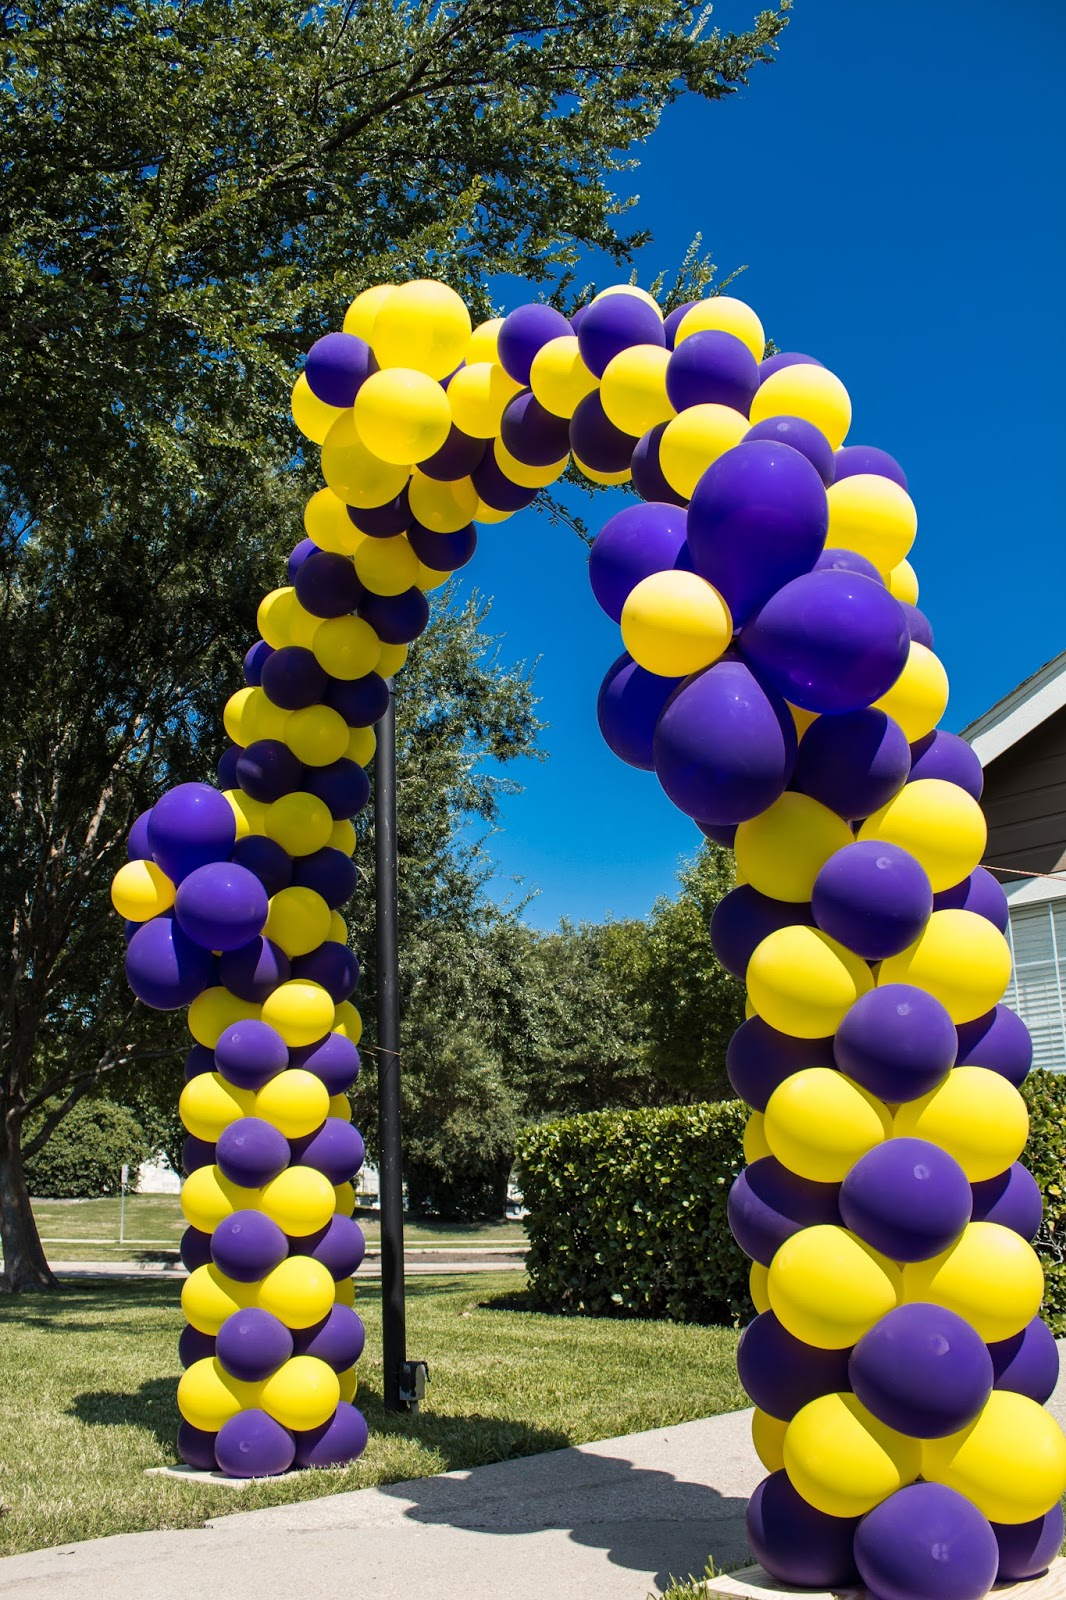 Balloon arch balloon ideas balloon decorations outdoor decorations - Santo Diamond Balloon Design Outdoor Balloon Arch